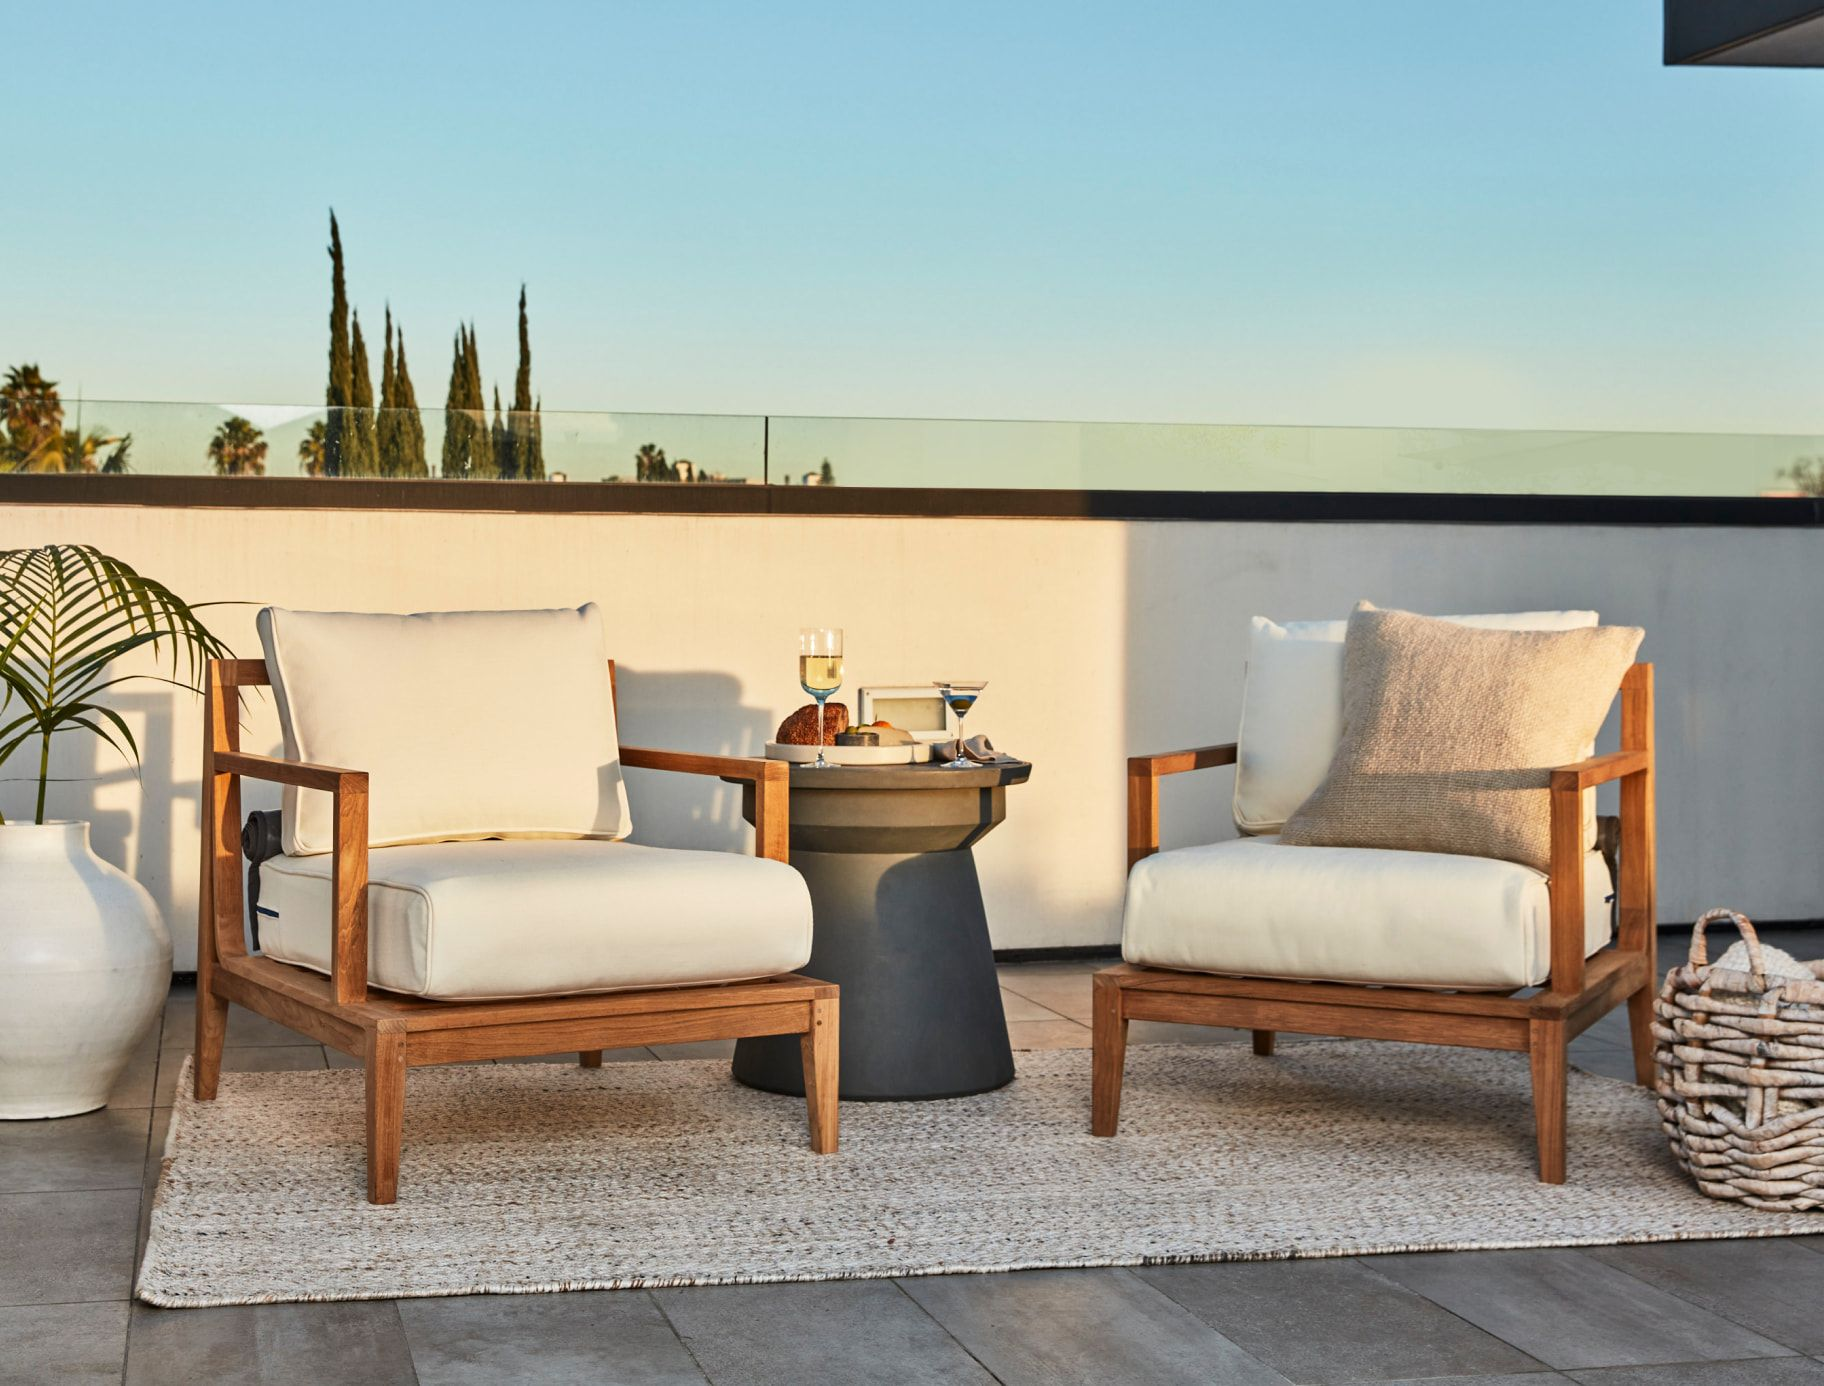 Two teak outdoor chairs with white cushions